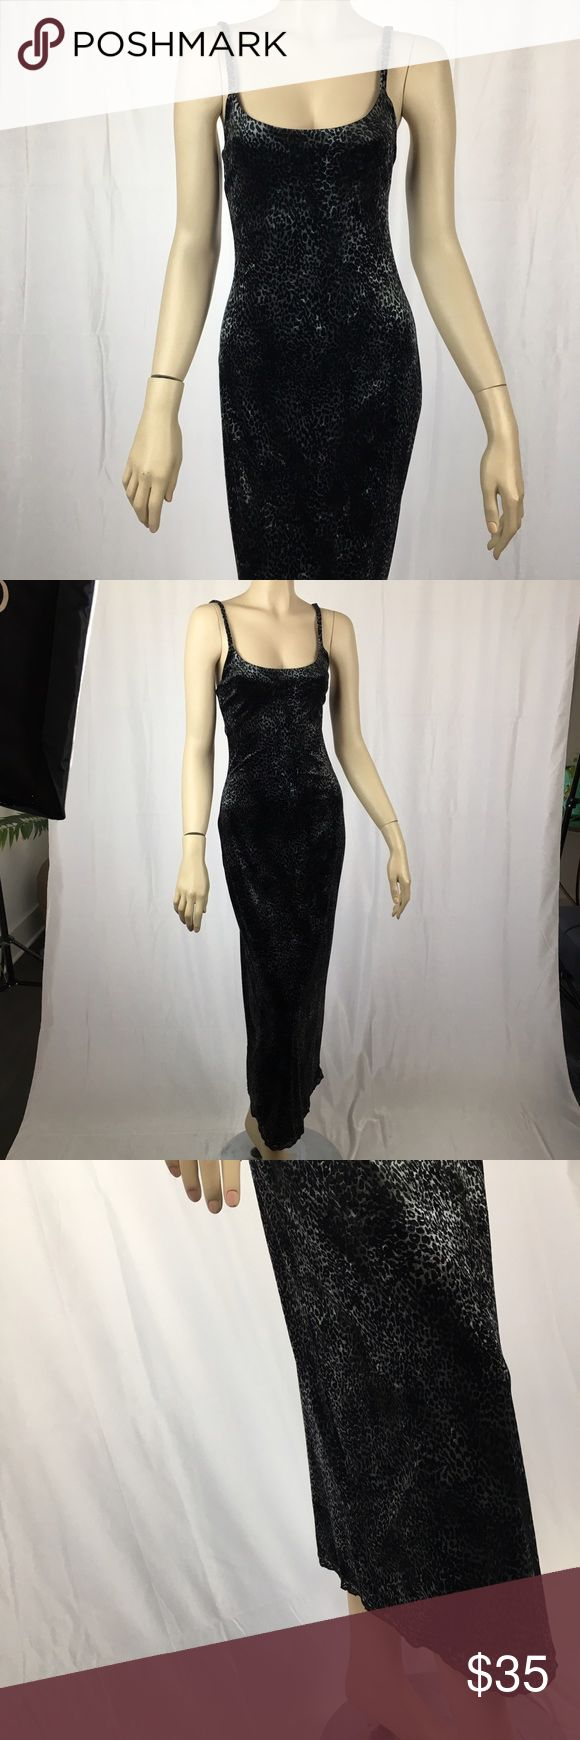 Betsey Johnson Velvet Gray & Black Leopard Maxi Vintage Betsey Johnson Velvet Gray & Black Leopard Print Maxi Dress with Lace bottom hem. Perfect condition. Very sexy. Made in USA. 64% Acetate, 26% polyamide, 10% elastic. Spaghetti straps. Size medium. Measurements: 50 inches long, 28 inch bust, 24 inch waist. Stretch material so these measurements have some wiggle room. Pattern has a brownish hue to it in certain lighting Betsey Johnson Dresses Maxi